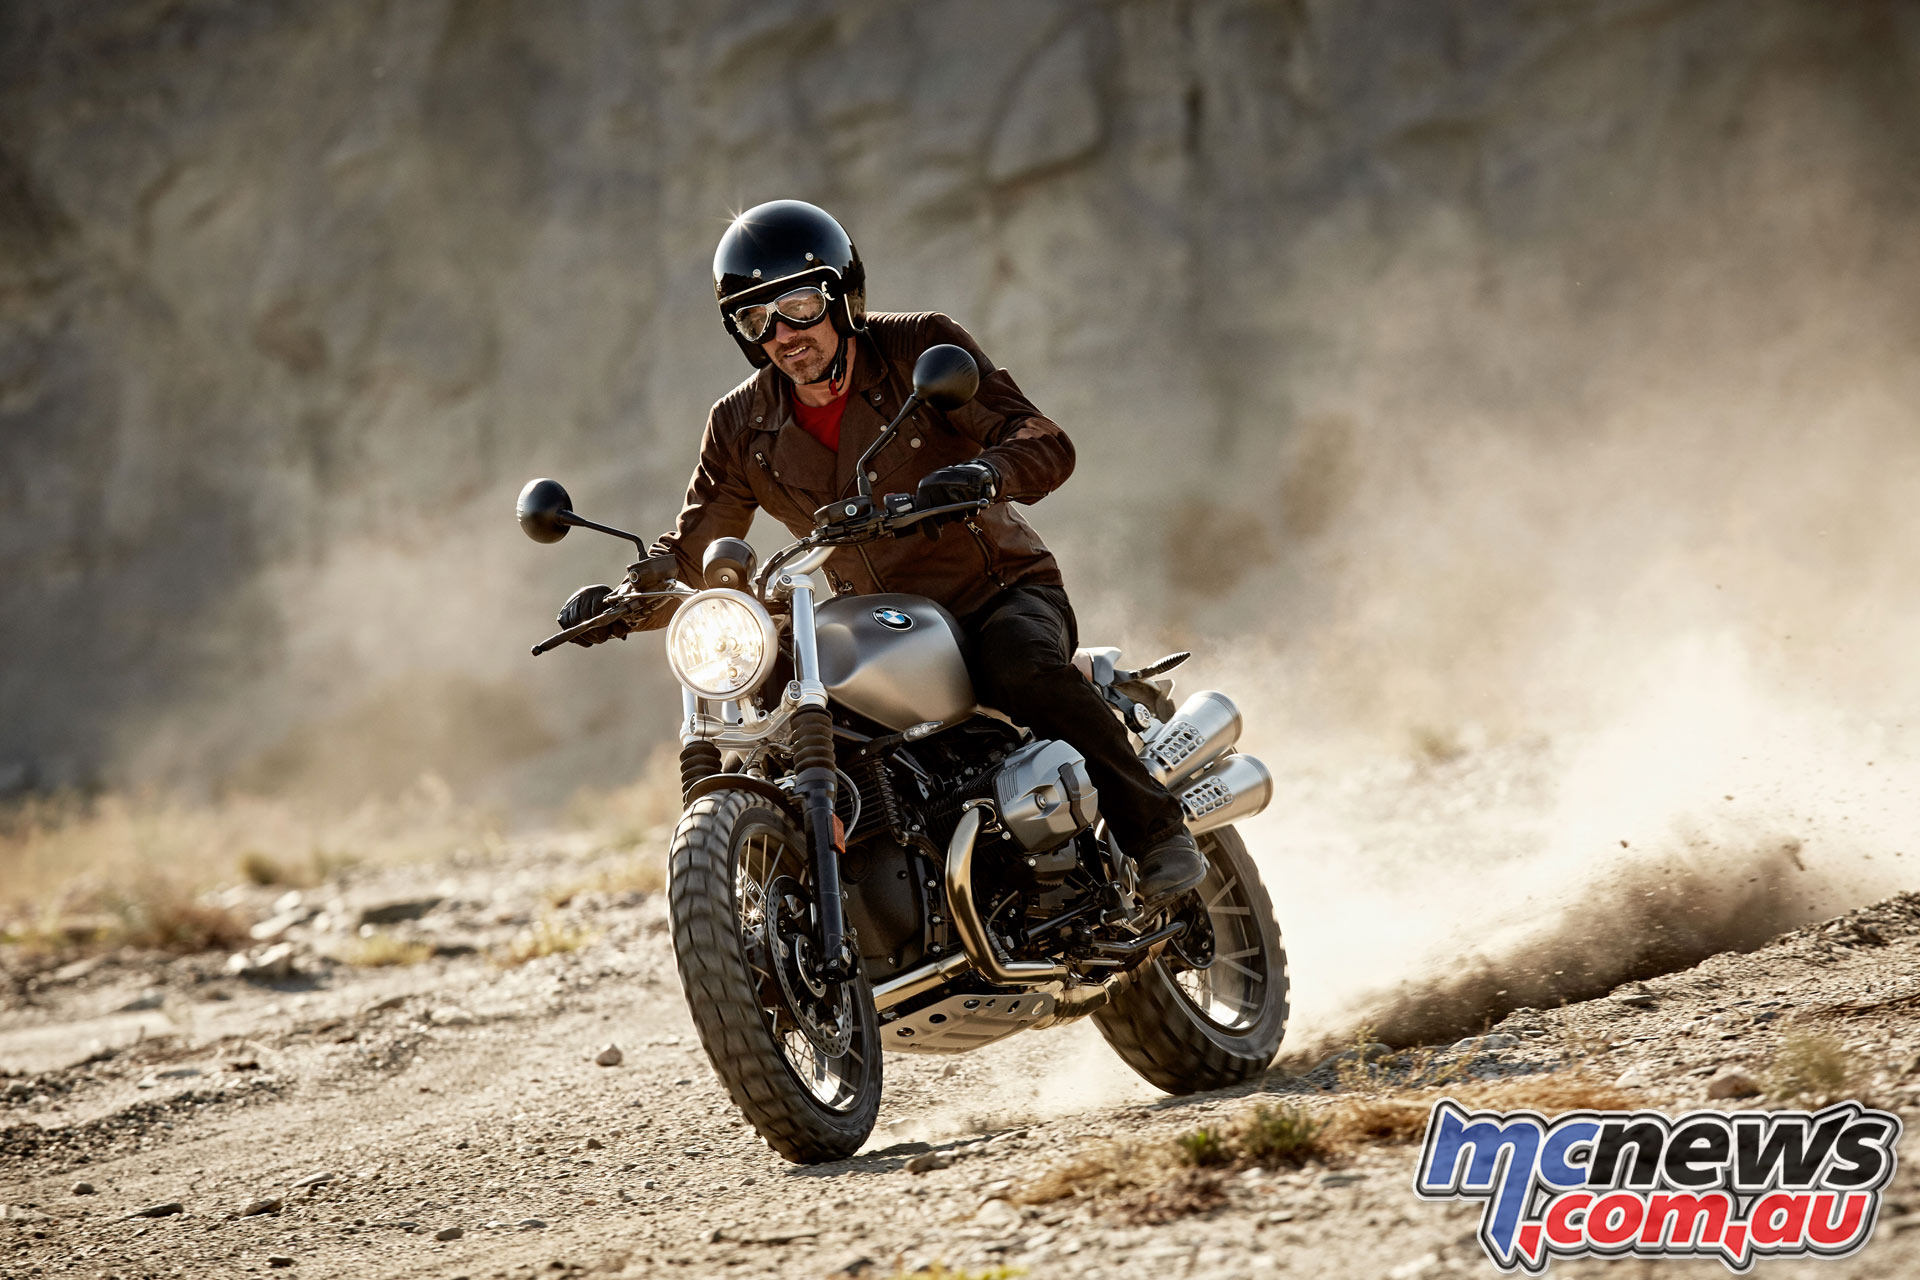 BMW Motorrad, Black Dog Ride and Lifeline are giving riders the opportunity to win a stunning R nineT Scrambler.